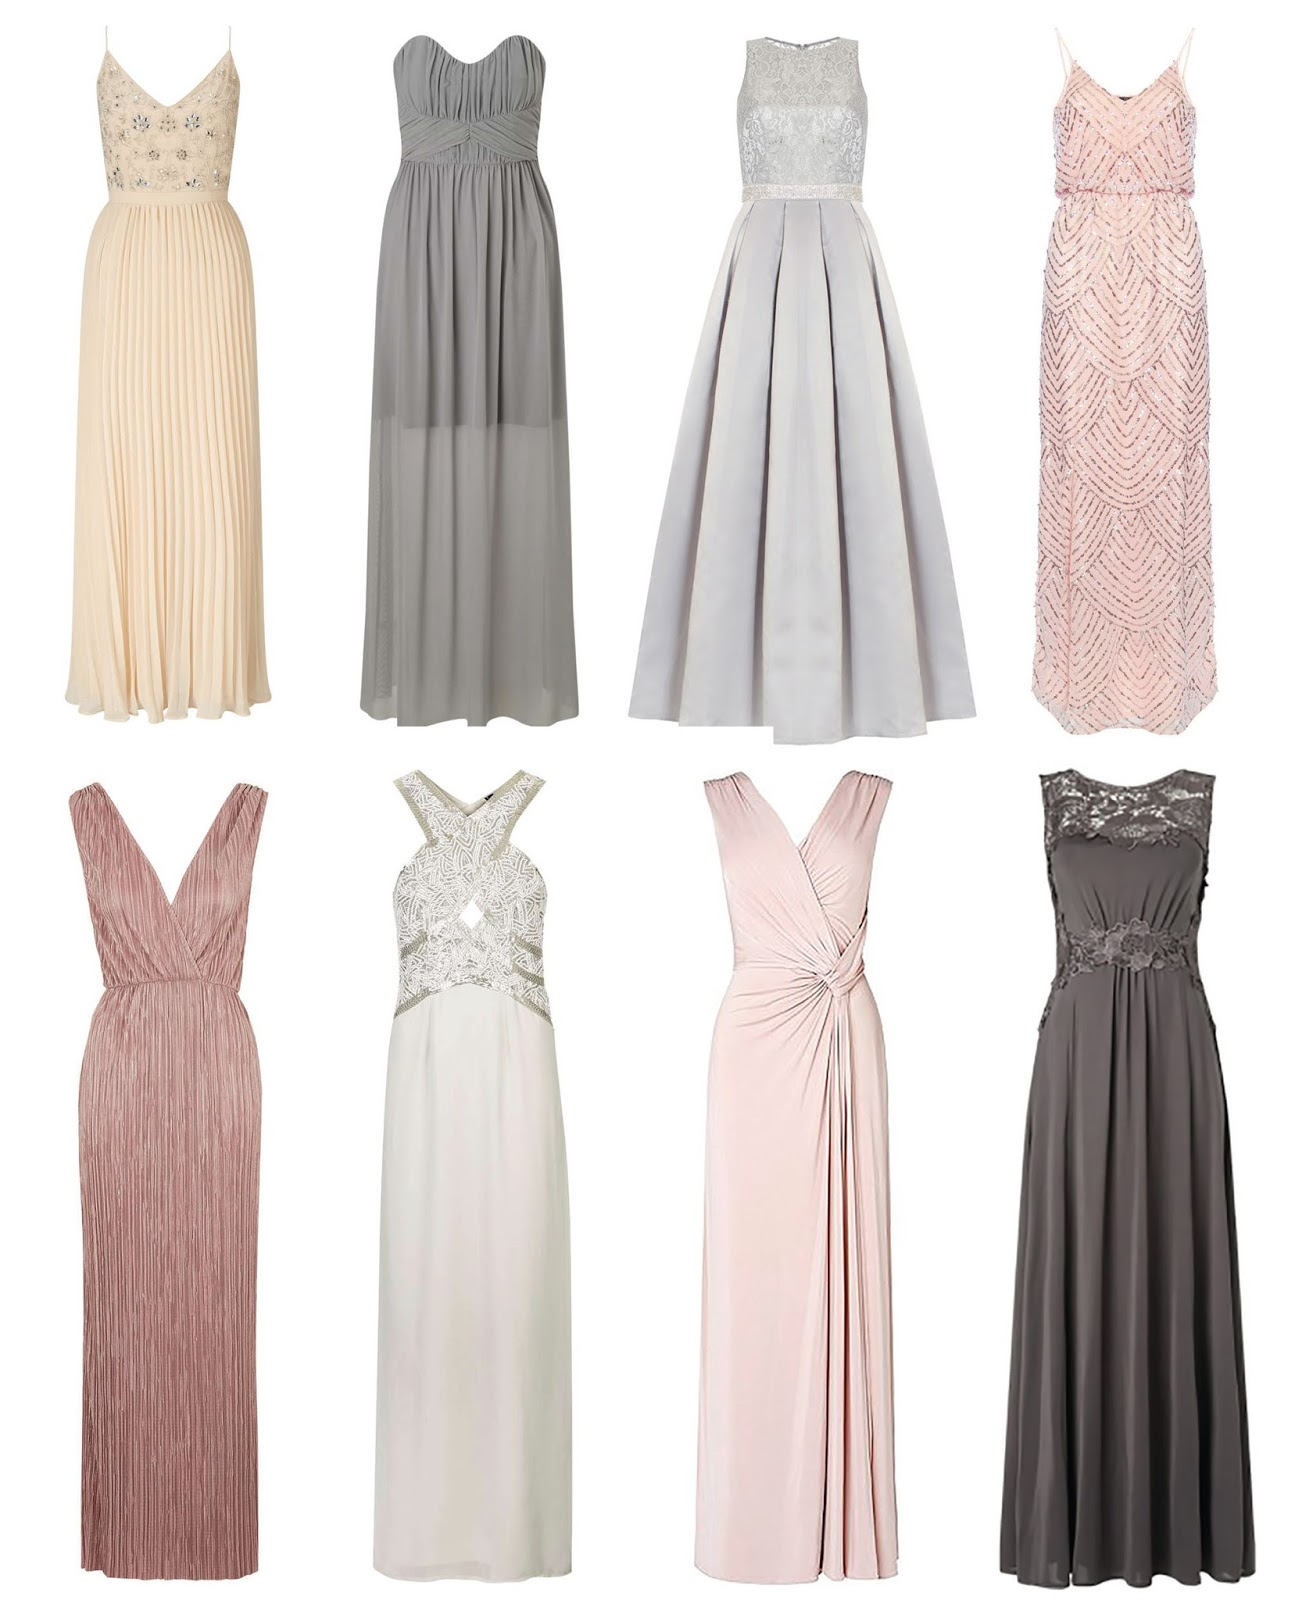 If You Re Looking For Something A Little Diffe To The Usual Wedding Bridesmaids Dress There S Plenty Of High Street And Online Retailers Offering